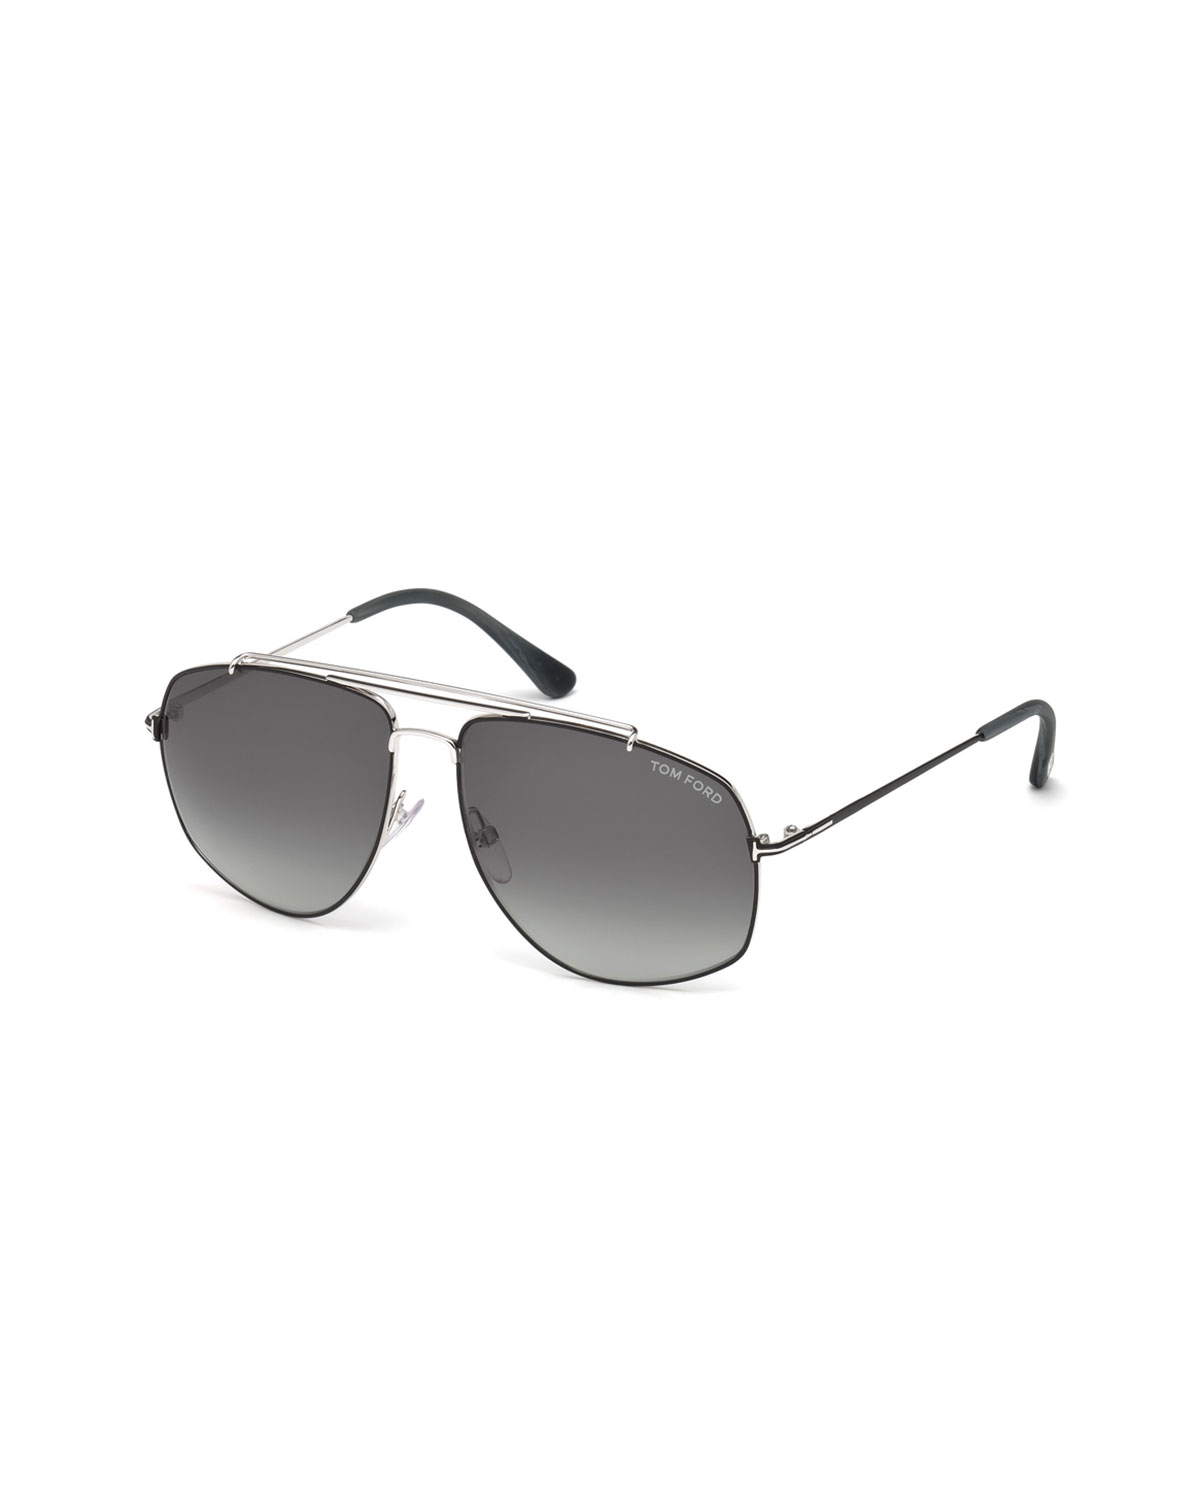 72403c3d44 TOM FORD Georges Angular Aviator Sunglasses